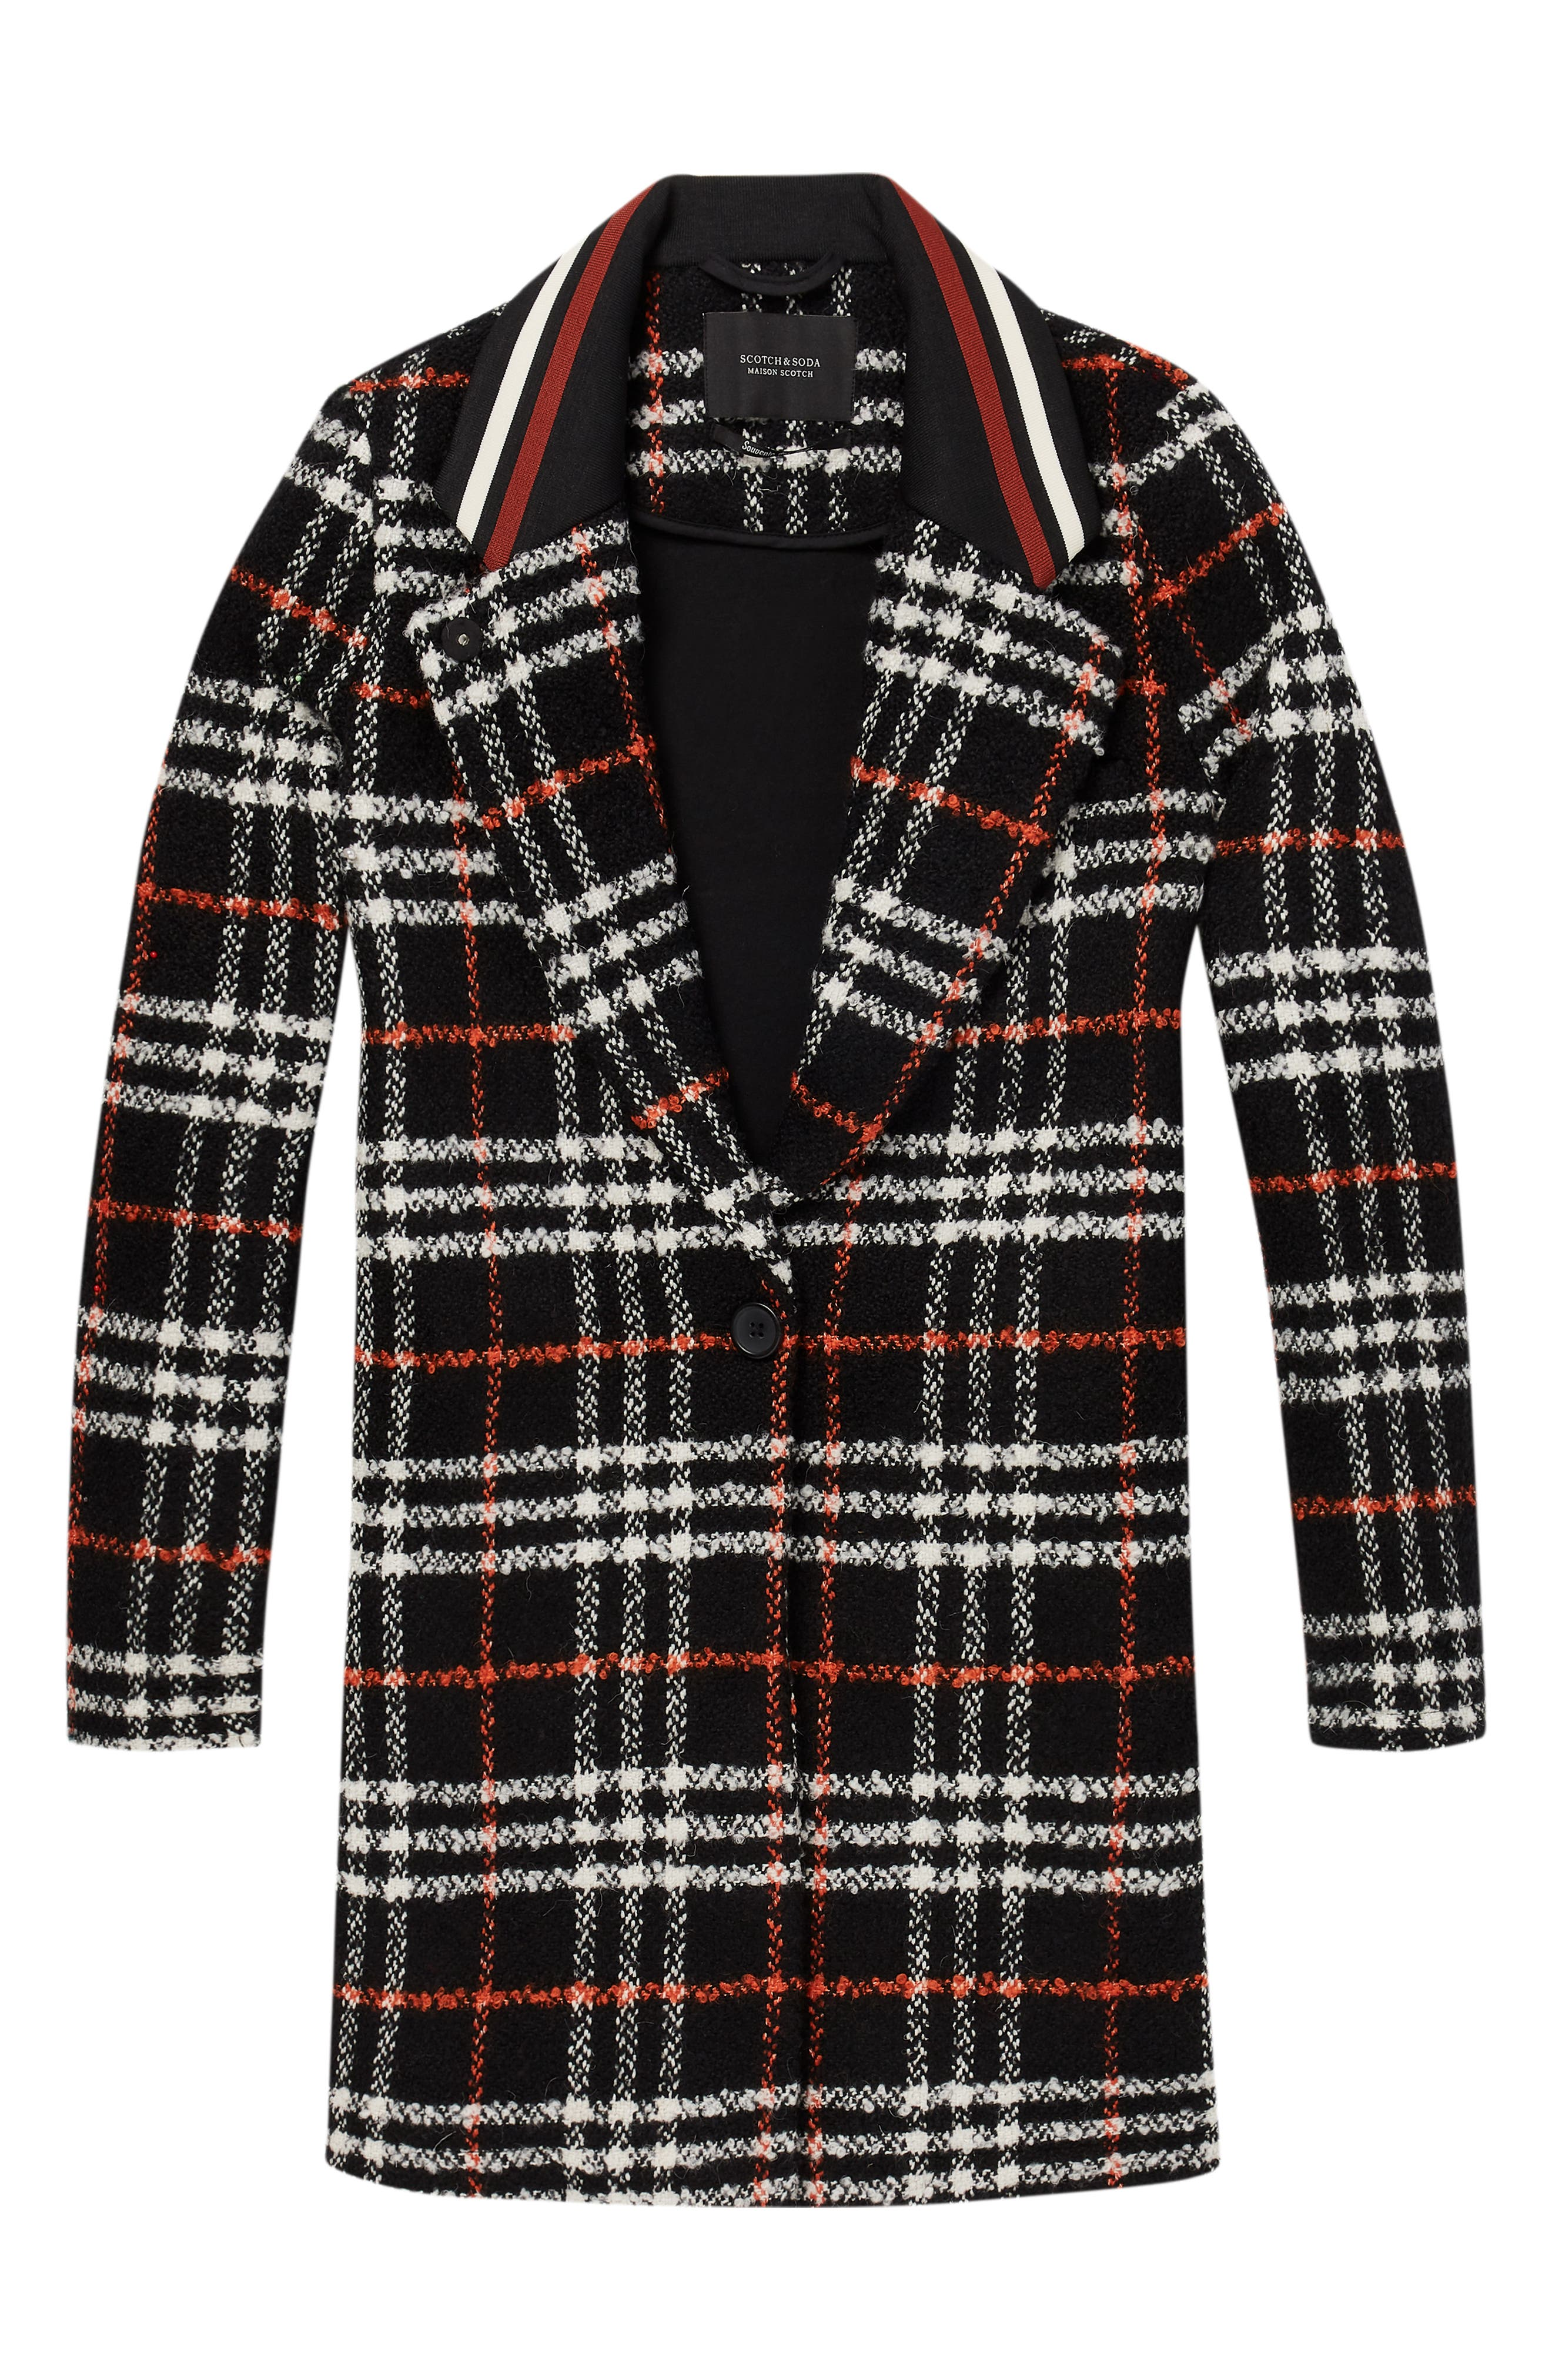 Bonded Wool Blend Jacket,                             Alternate thumbnail 3, color,                             BLACK AND RED PLAID